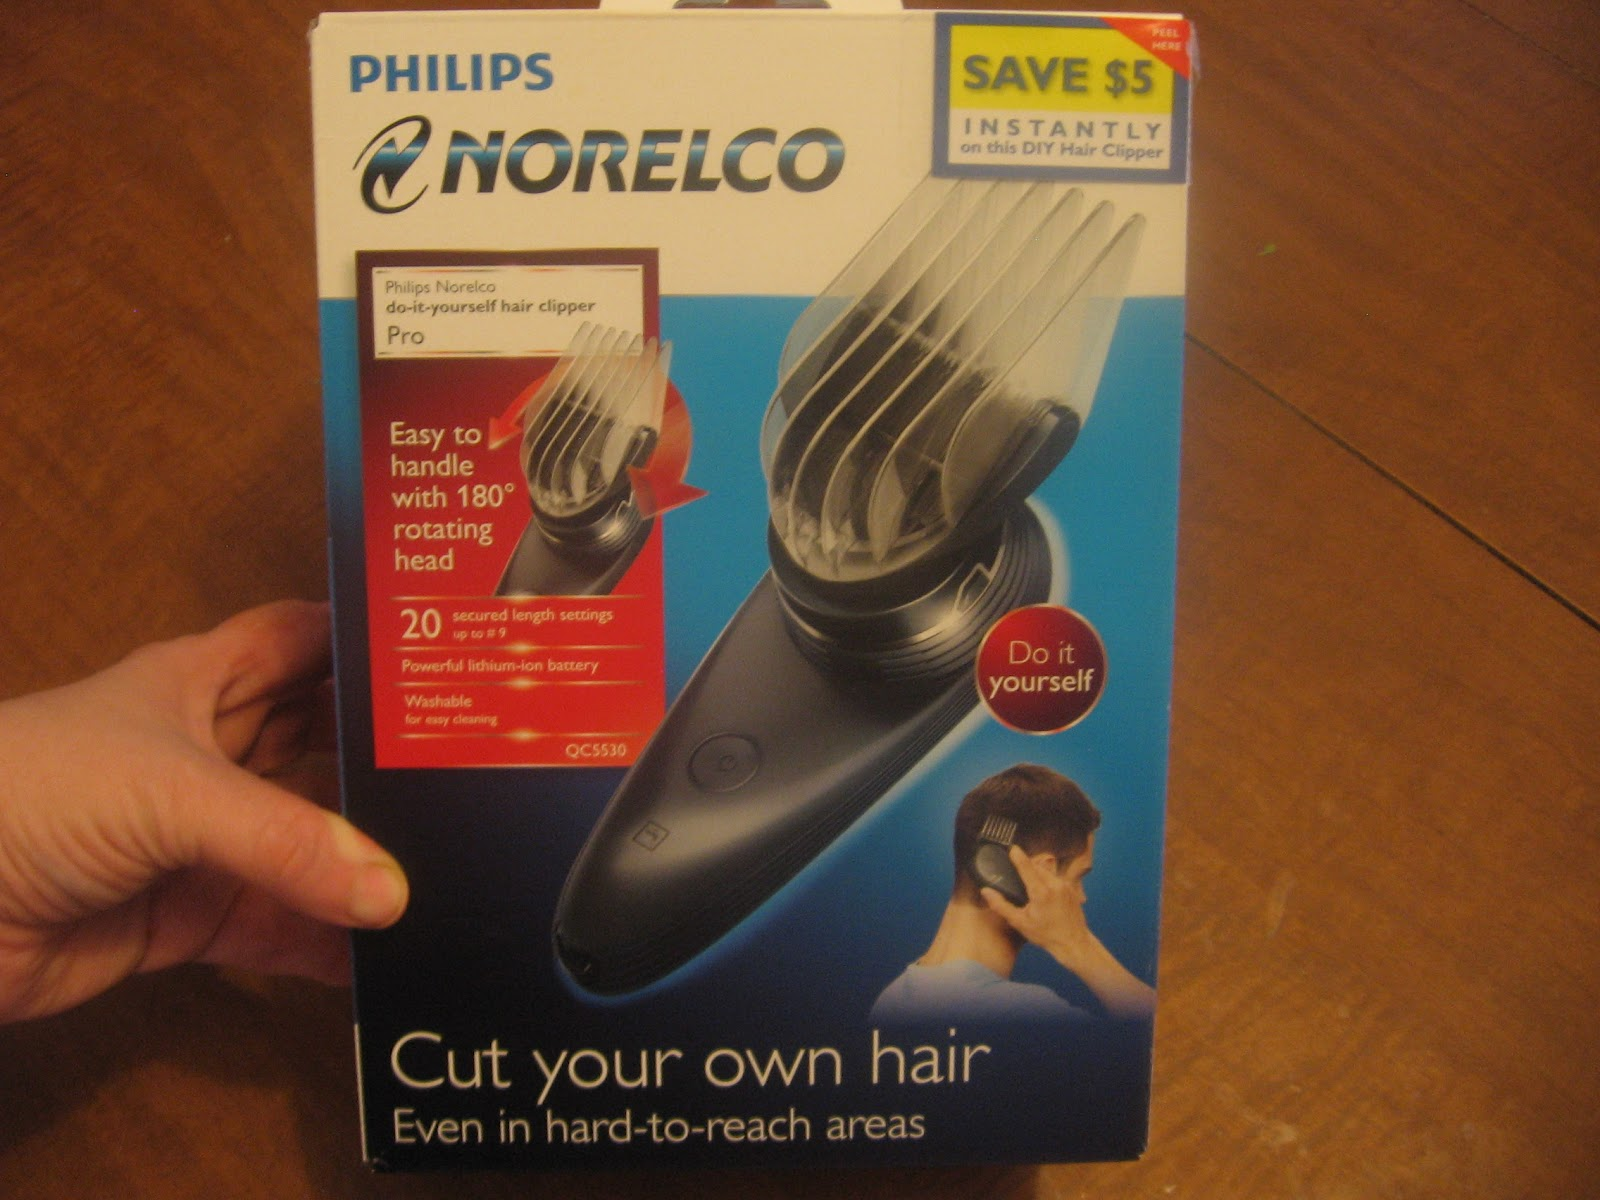 Tots and me growing up together philips norelco do it yourself philips norelco do it yourself hair clippers pro review solutioingenieria Image collections